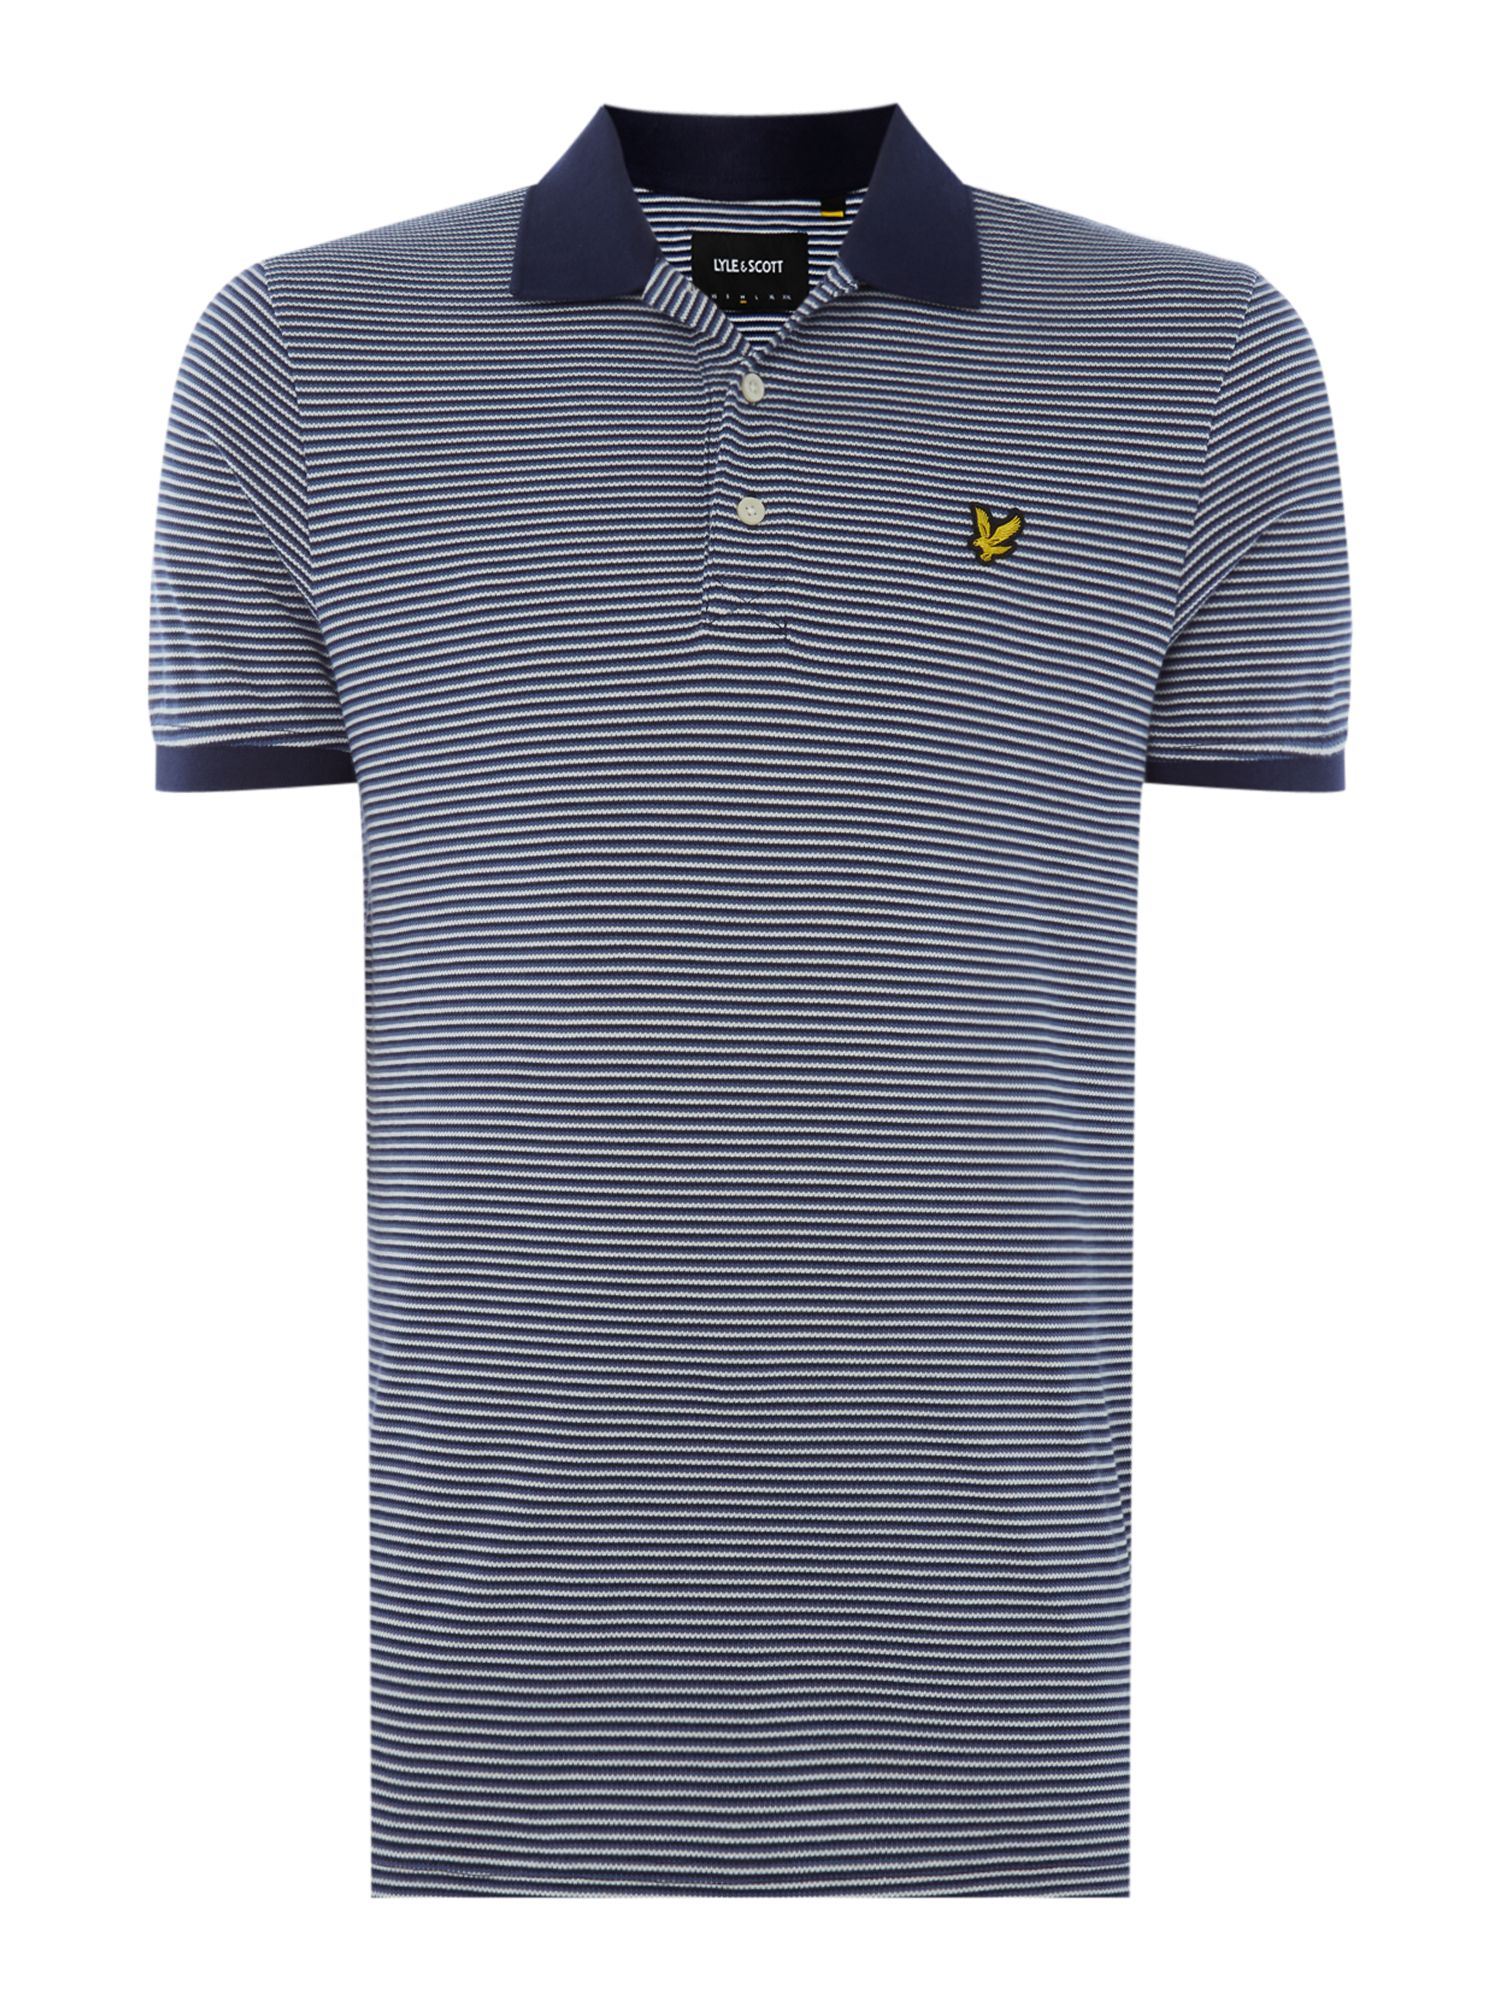 Men's Lyle and Scott Feeder Stripe Short-Sleeve Polo Shirt, Blue